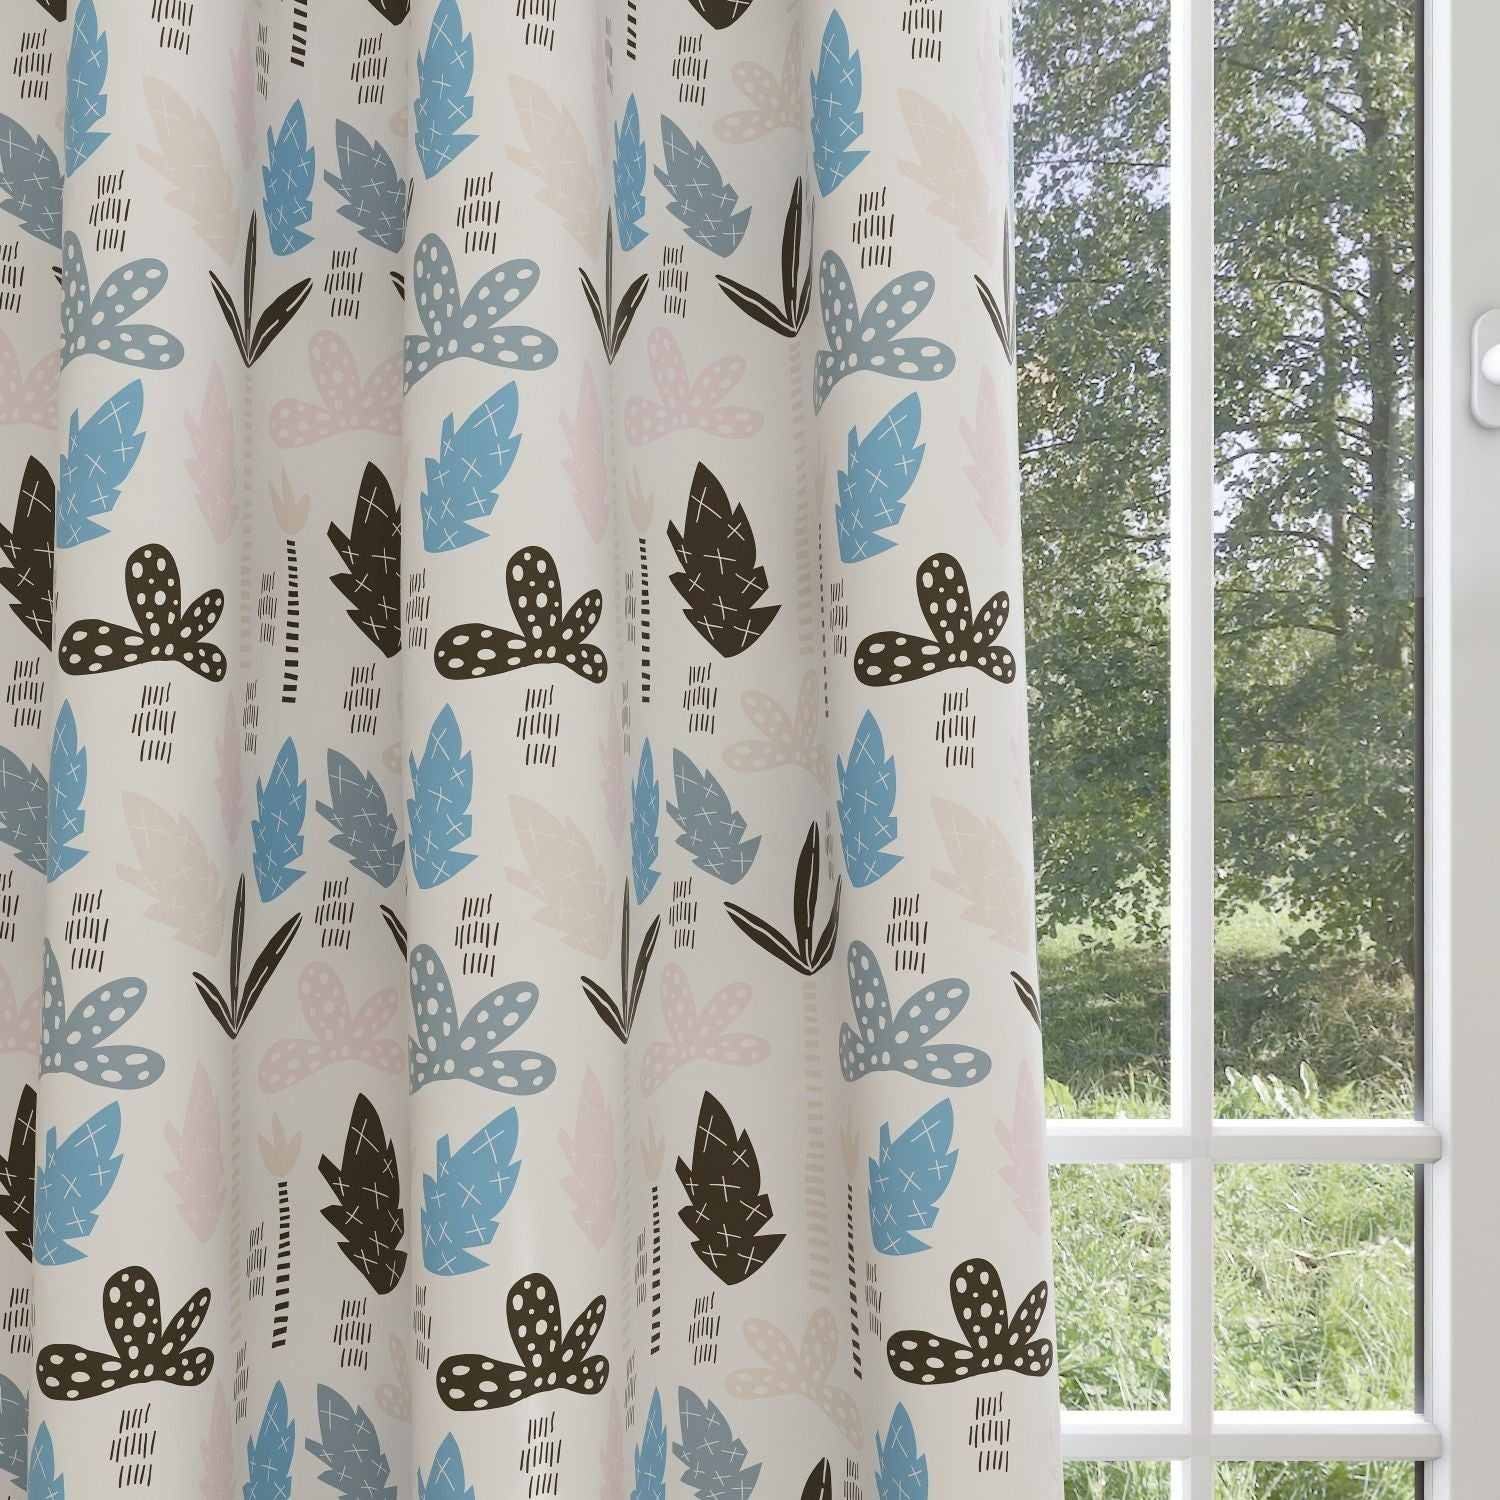 Tropic Kids & Nursery Blackout Curtains - Tropic-cool